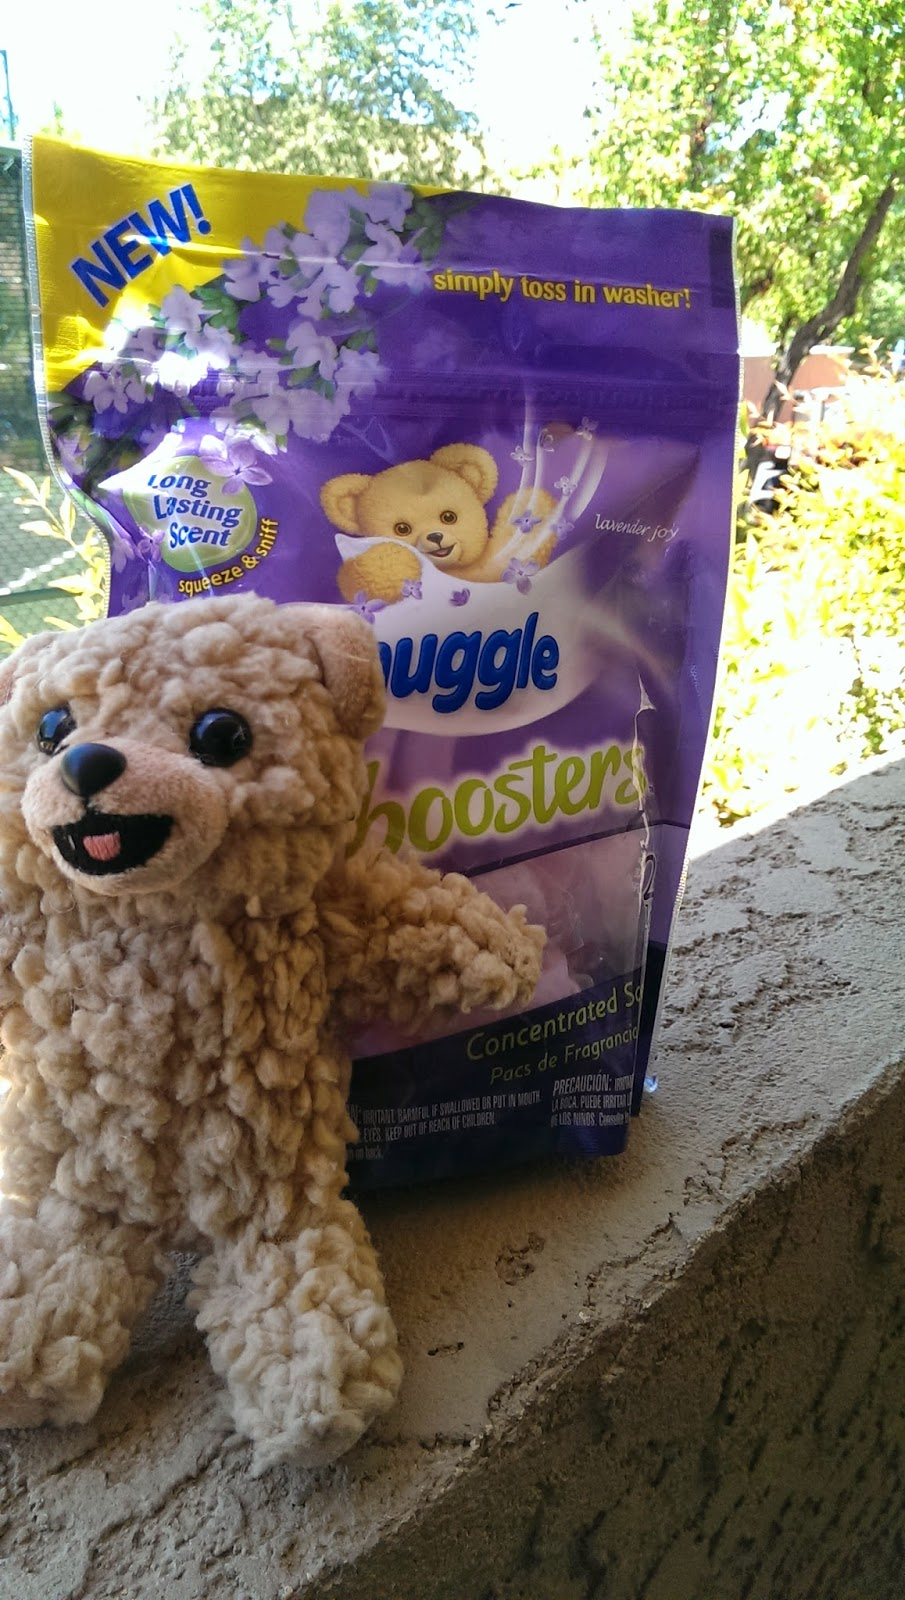 Snuggle Snuggle Scent Boosters Review @Snuggle_Bear